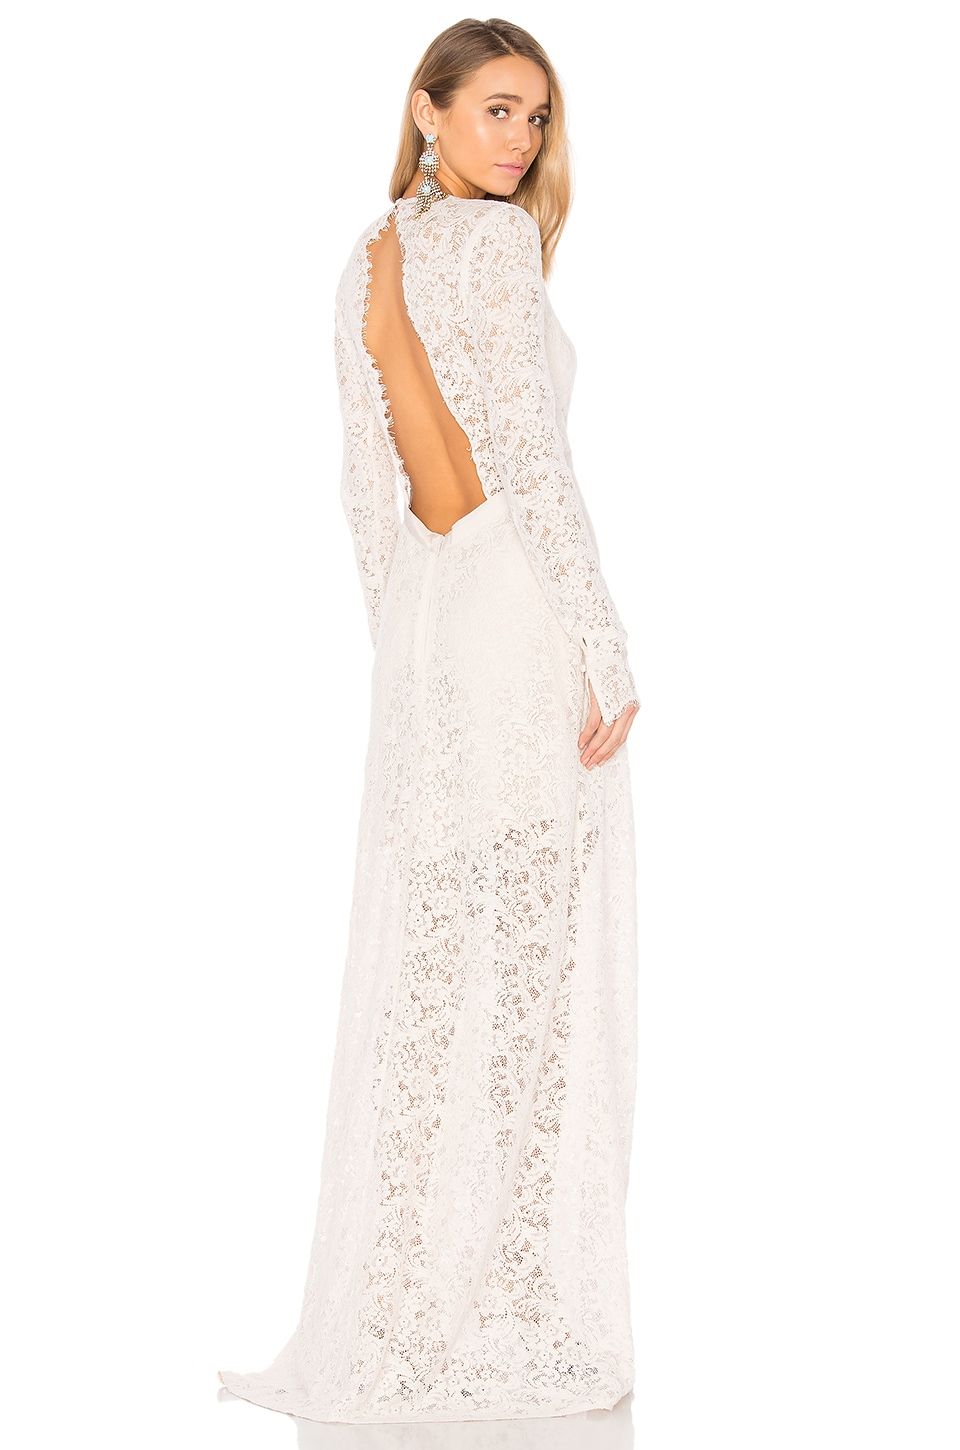 Voyage Maxi Dress by THE JETSET DIARIES